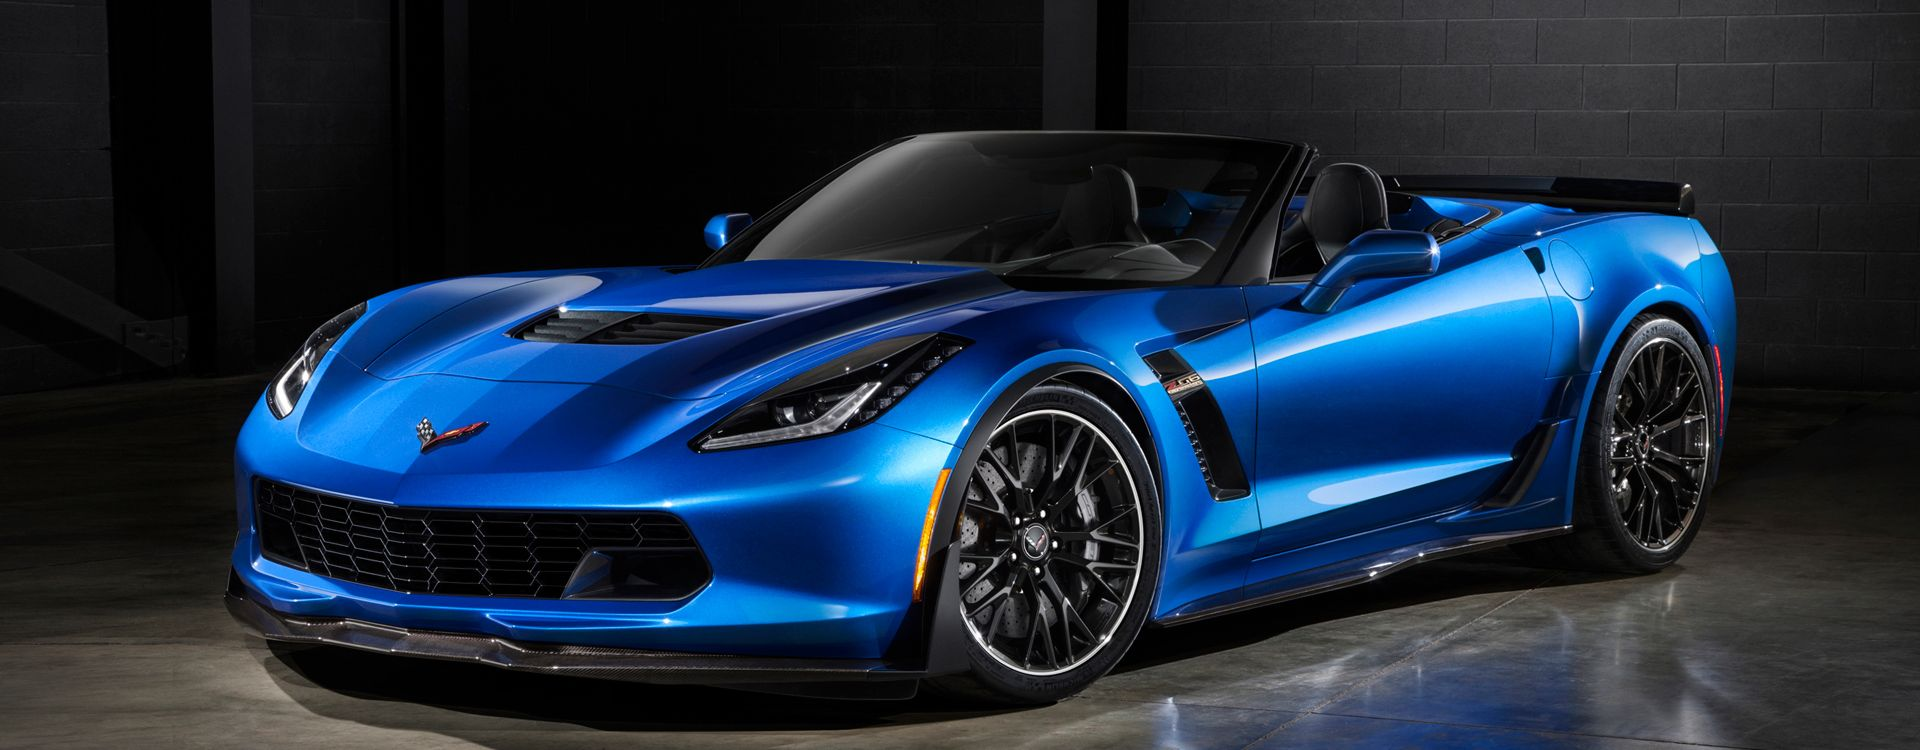 2015 Chevrolet Corvette Z06 Convertible 5 1920x1080